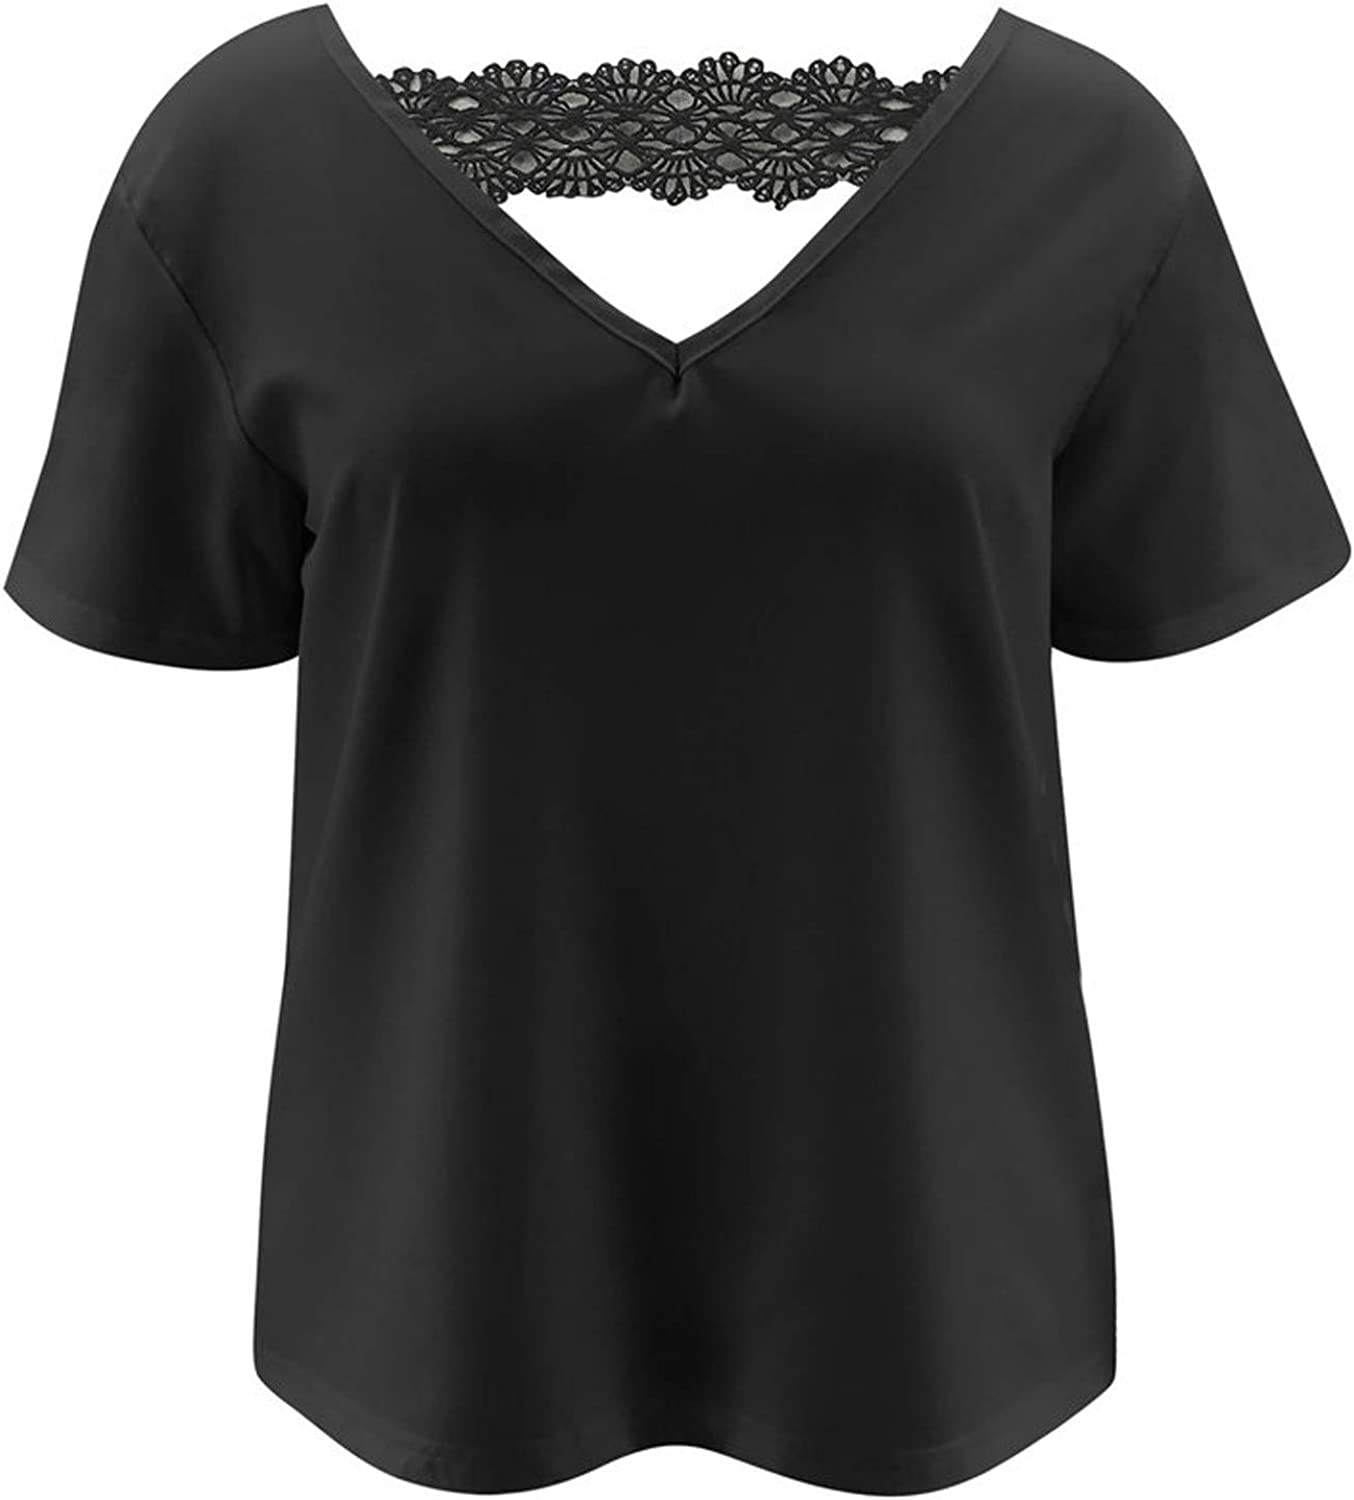 Aukbays Womens Long Sleeve Tops Scoop Neck Pleated Blouse Solid Color Graphic T-Shirts Loose Fit Blousees Tees Shirts